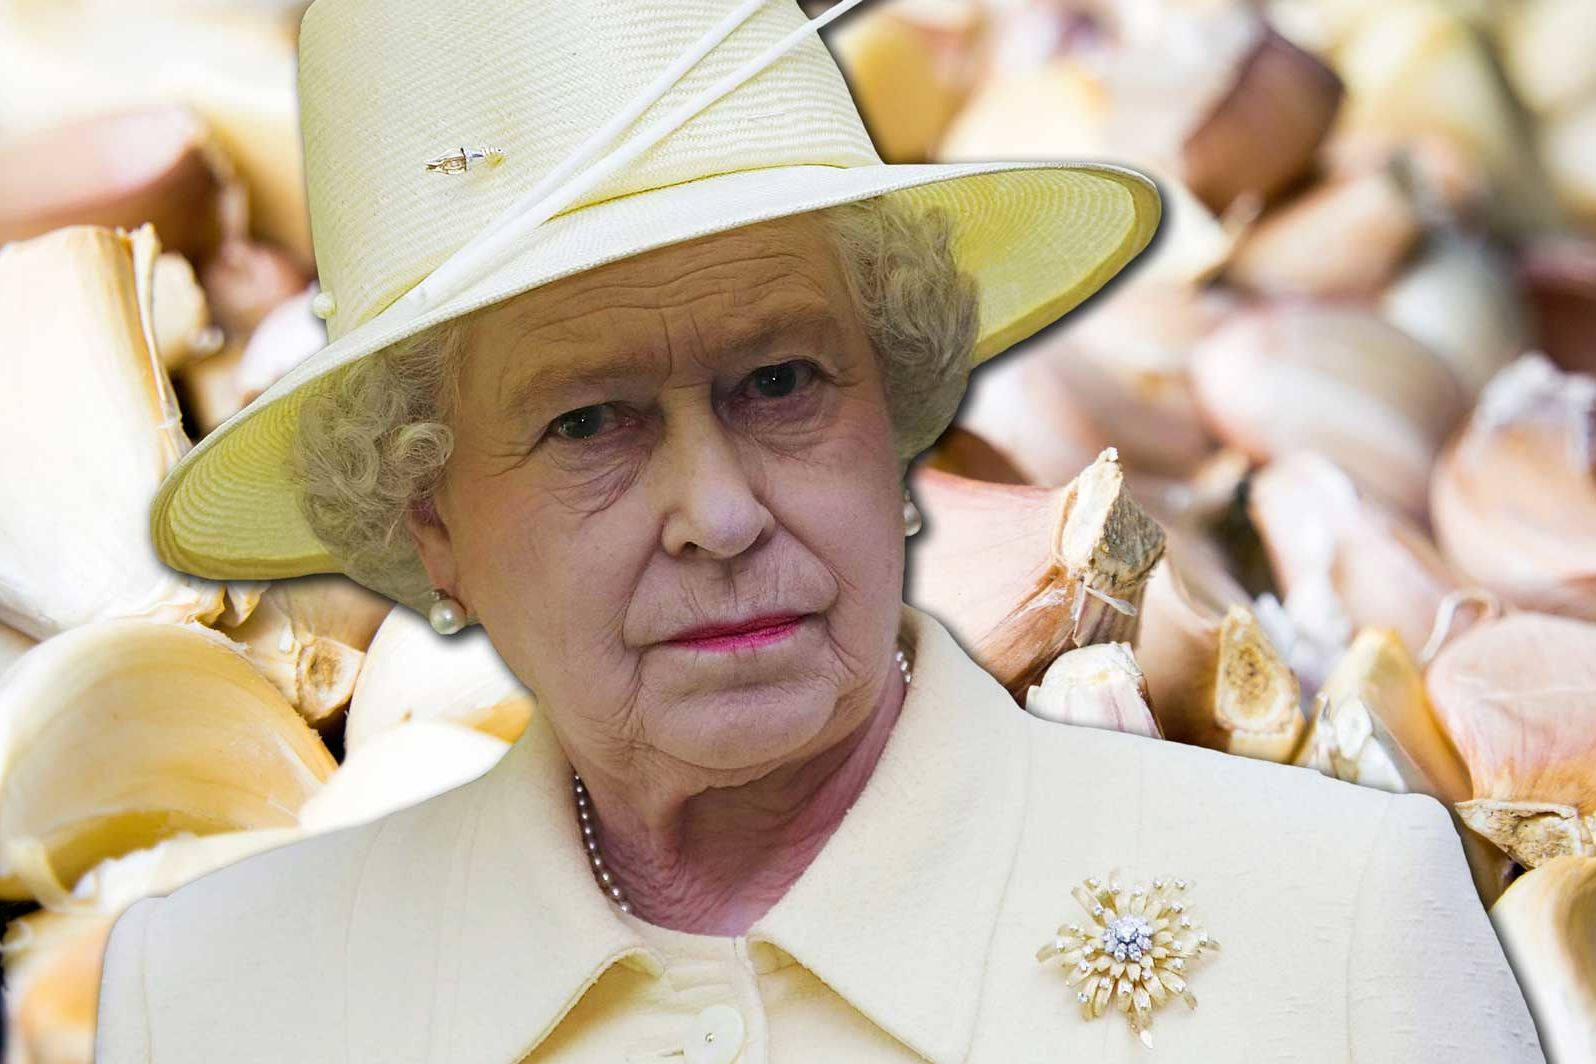 The One Food the Queen of England Hates